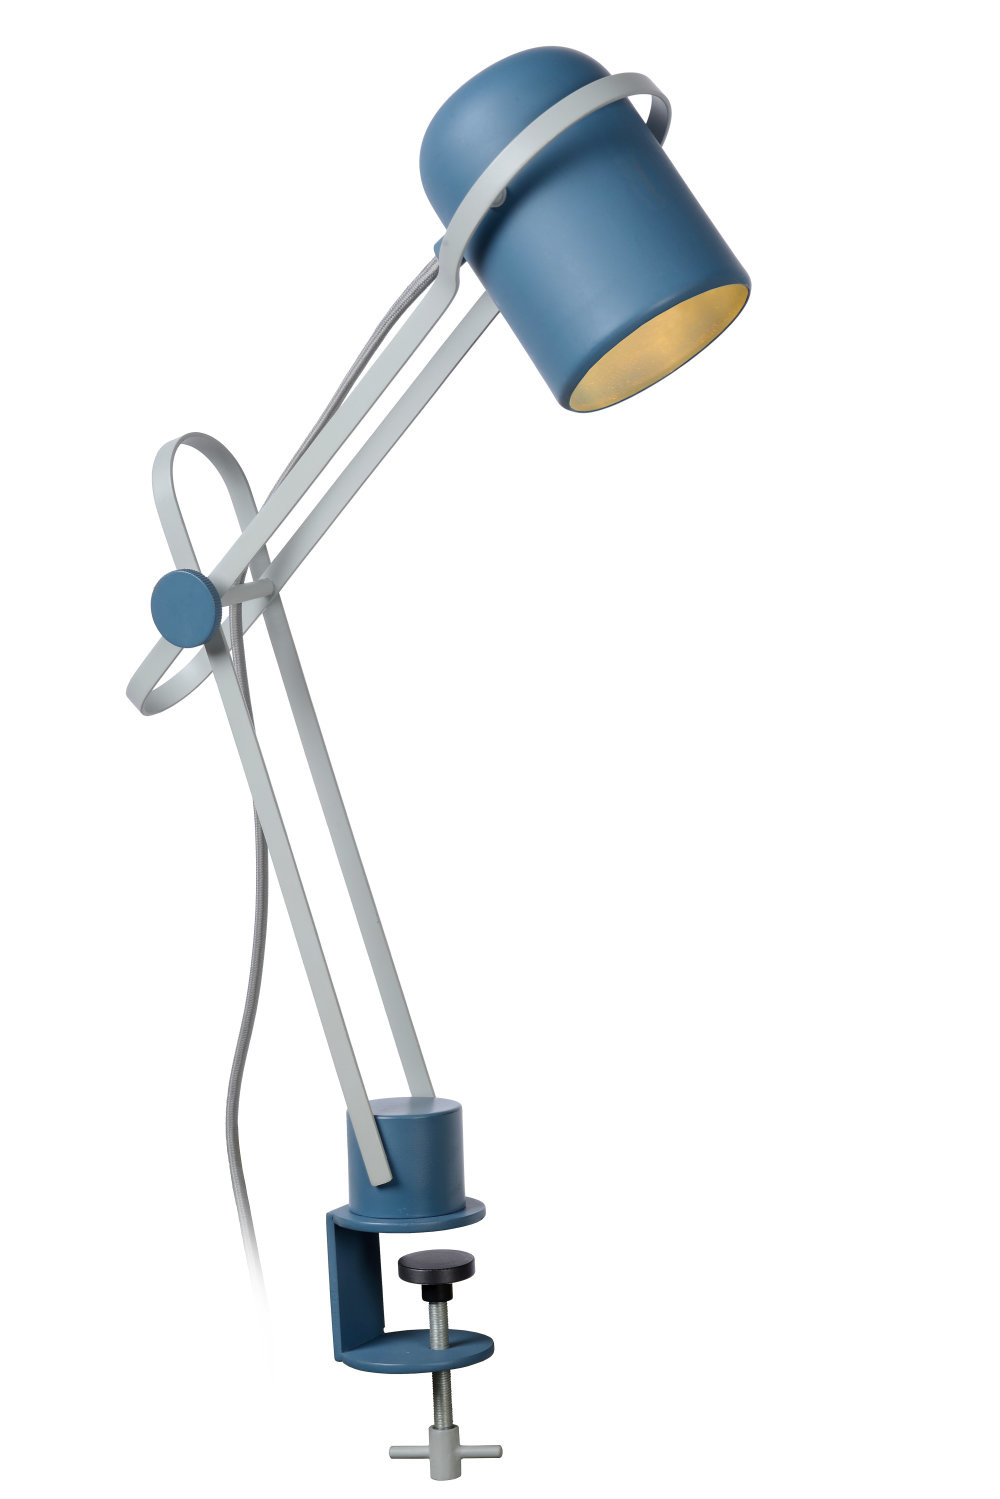 Lucide BASTIN Klemlamp Kinder-Blauw-1xE14-25W-Staal